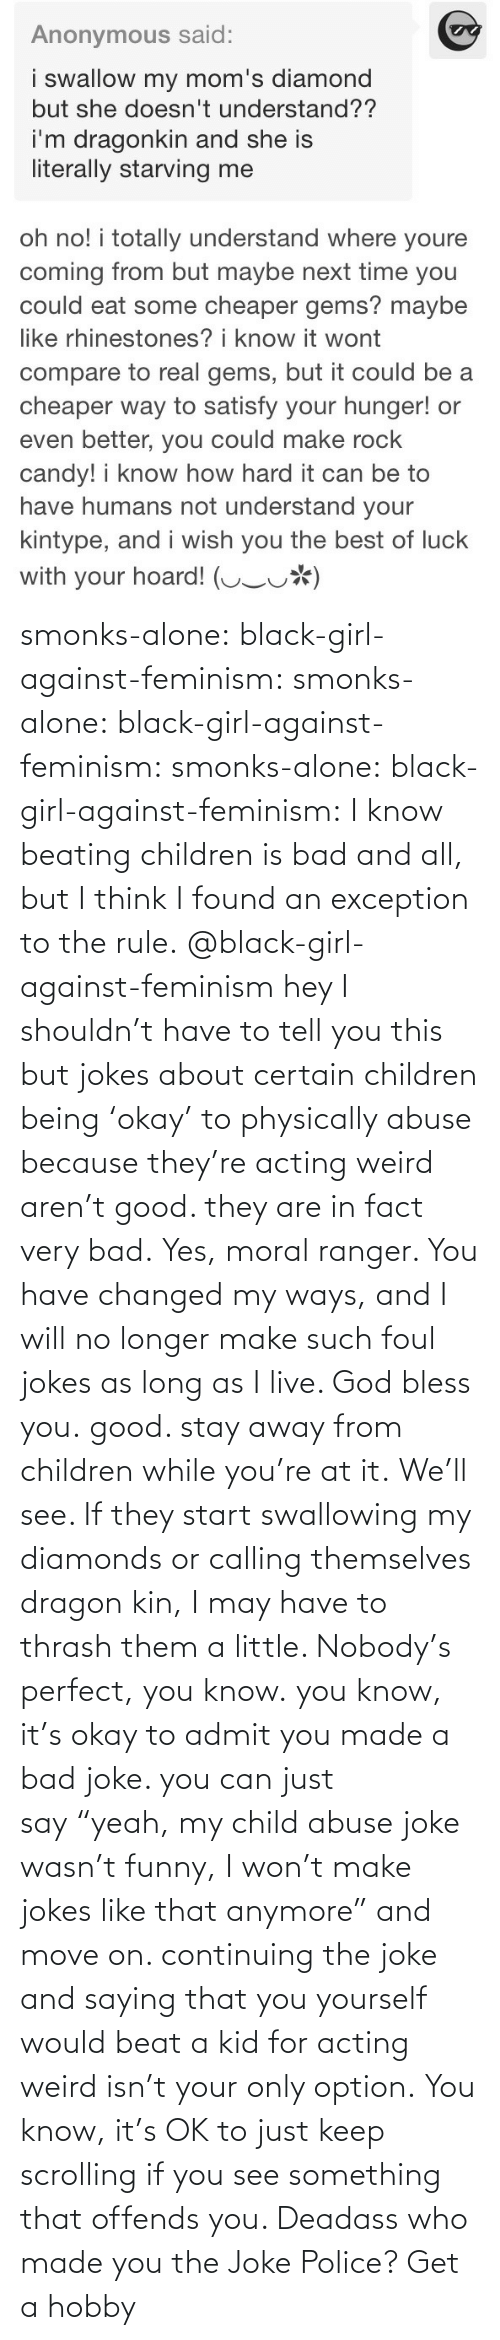 "i live: smonks-alone:  black-girl-against-feminism: smonks-alone:  black-girl-against-feminism:  smonks-alone:  black-girl-against-feminism: I know beating children is bad and all, but I think I found an exception to the rule. @black-girl-against-feminism hey I shouldn't have to tell you this but jokes about certain children being 'okay' to physically abuse because they're acting weird aren't good. they are in fact very bad.  Yes, moral ranger. You have changed my ways, and I will no longer make such foul jokes as long as I live. God bless you.  good. stay away from children while you're at it.  We'll see. If they start swallowing my diamonds or calling themselves dragon kin, I may have to thrash them a little. Nobody's perfect, you know.  you know, it's okay to admit you made a bad joke. you can just say ""yeah, my child abuse joke wasn't funny, I won't make jokes like that anymore"" and move on. continuing the joke and saying that you yourself would beat a kid for acting weird isn't your only option.   You know, it's OK to just keep scrolling if you see something that offends you. Deadass who made you the Joke Police? Get a hobby"